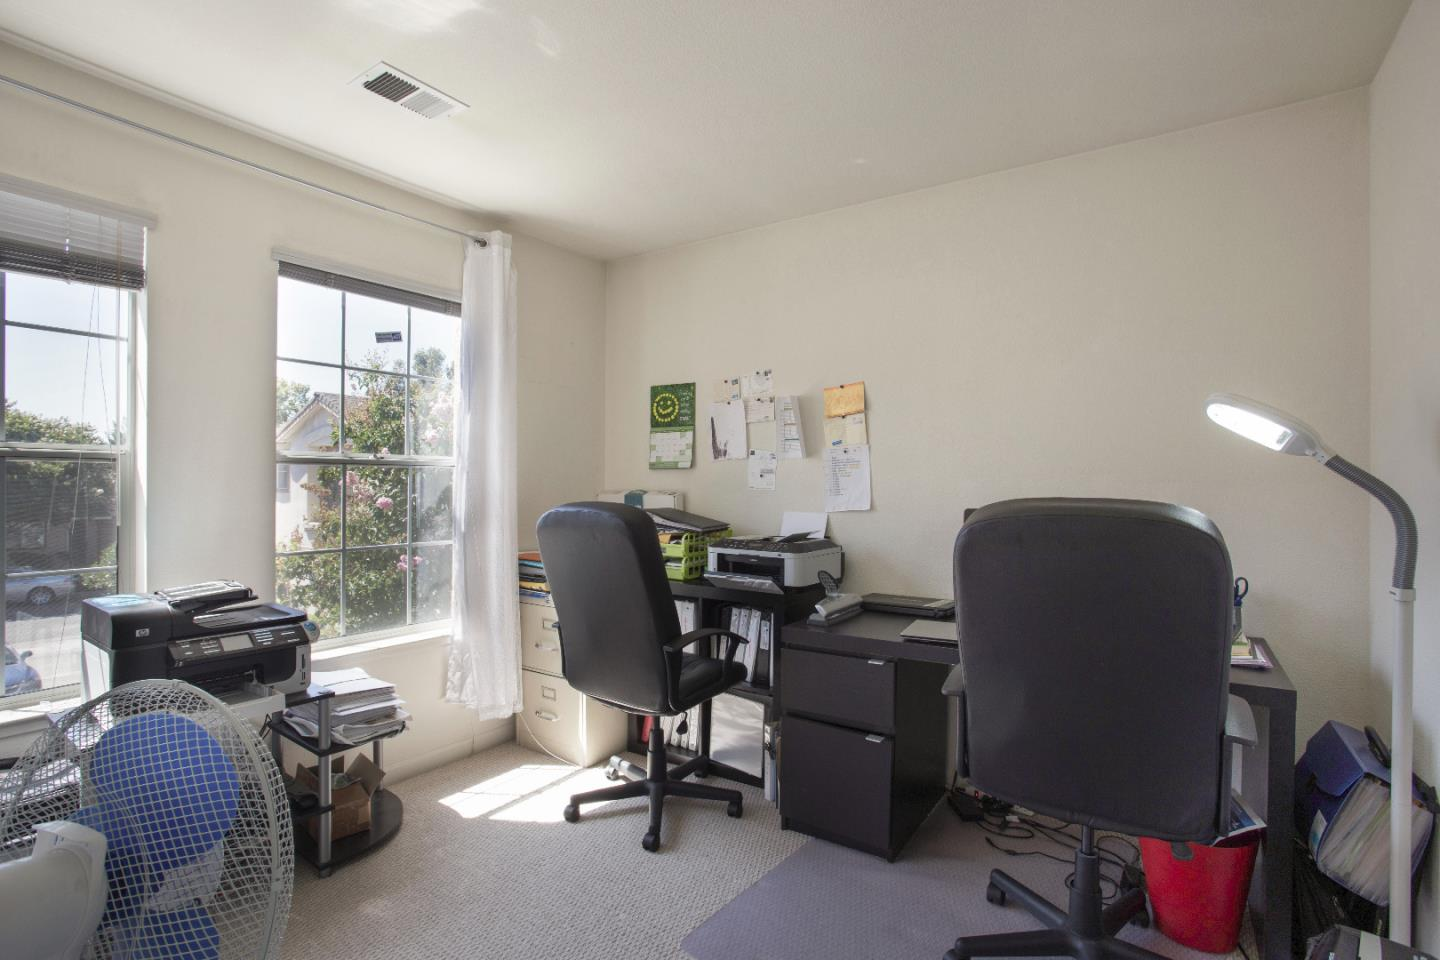 Additional photo for property listing at 1575 Sawgrass Drive  San Jose, カリフォルニア 95116 アメリカ合衆国